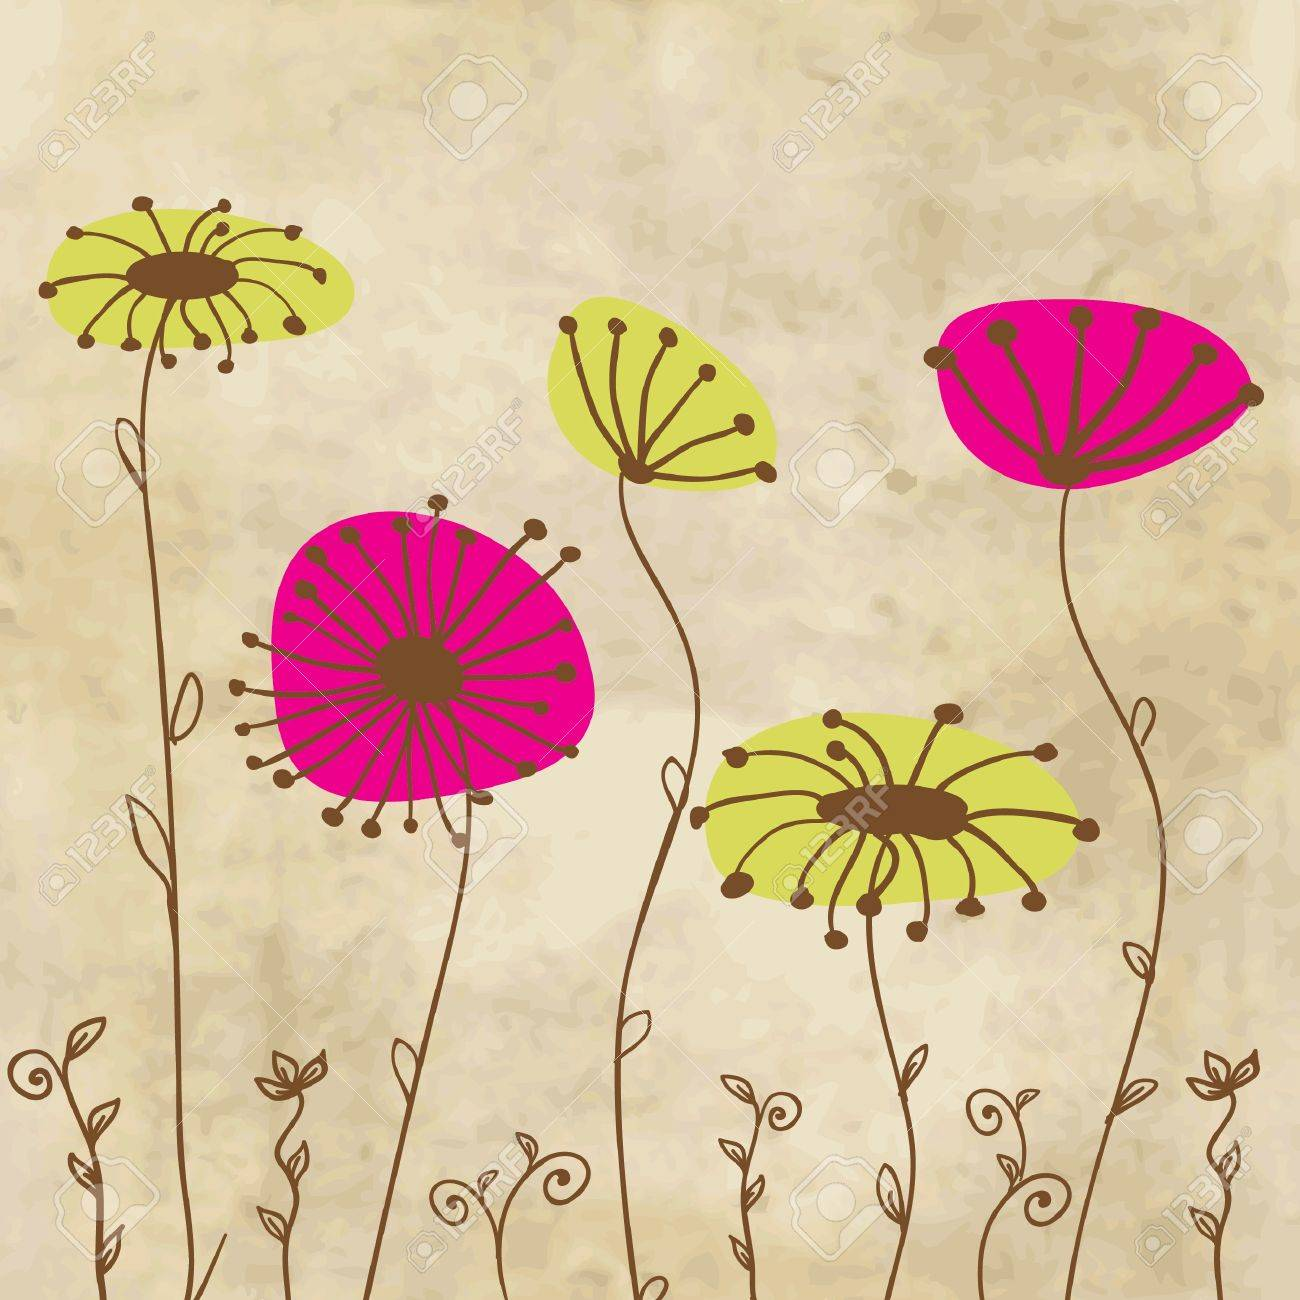 Vintage floral background with hand drawn flowers Stock Vector - 10513310